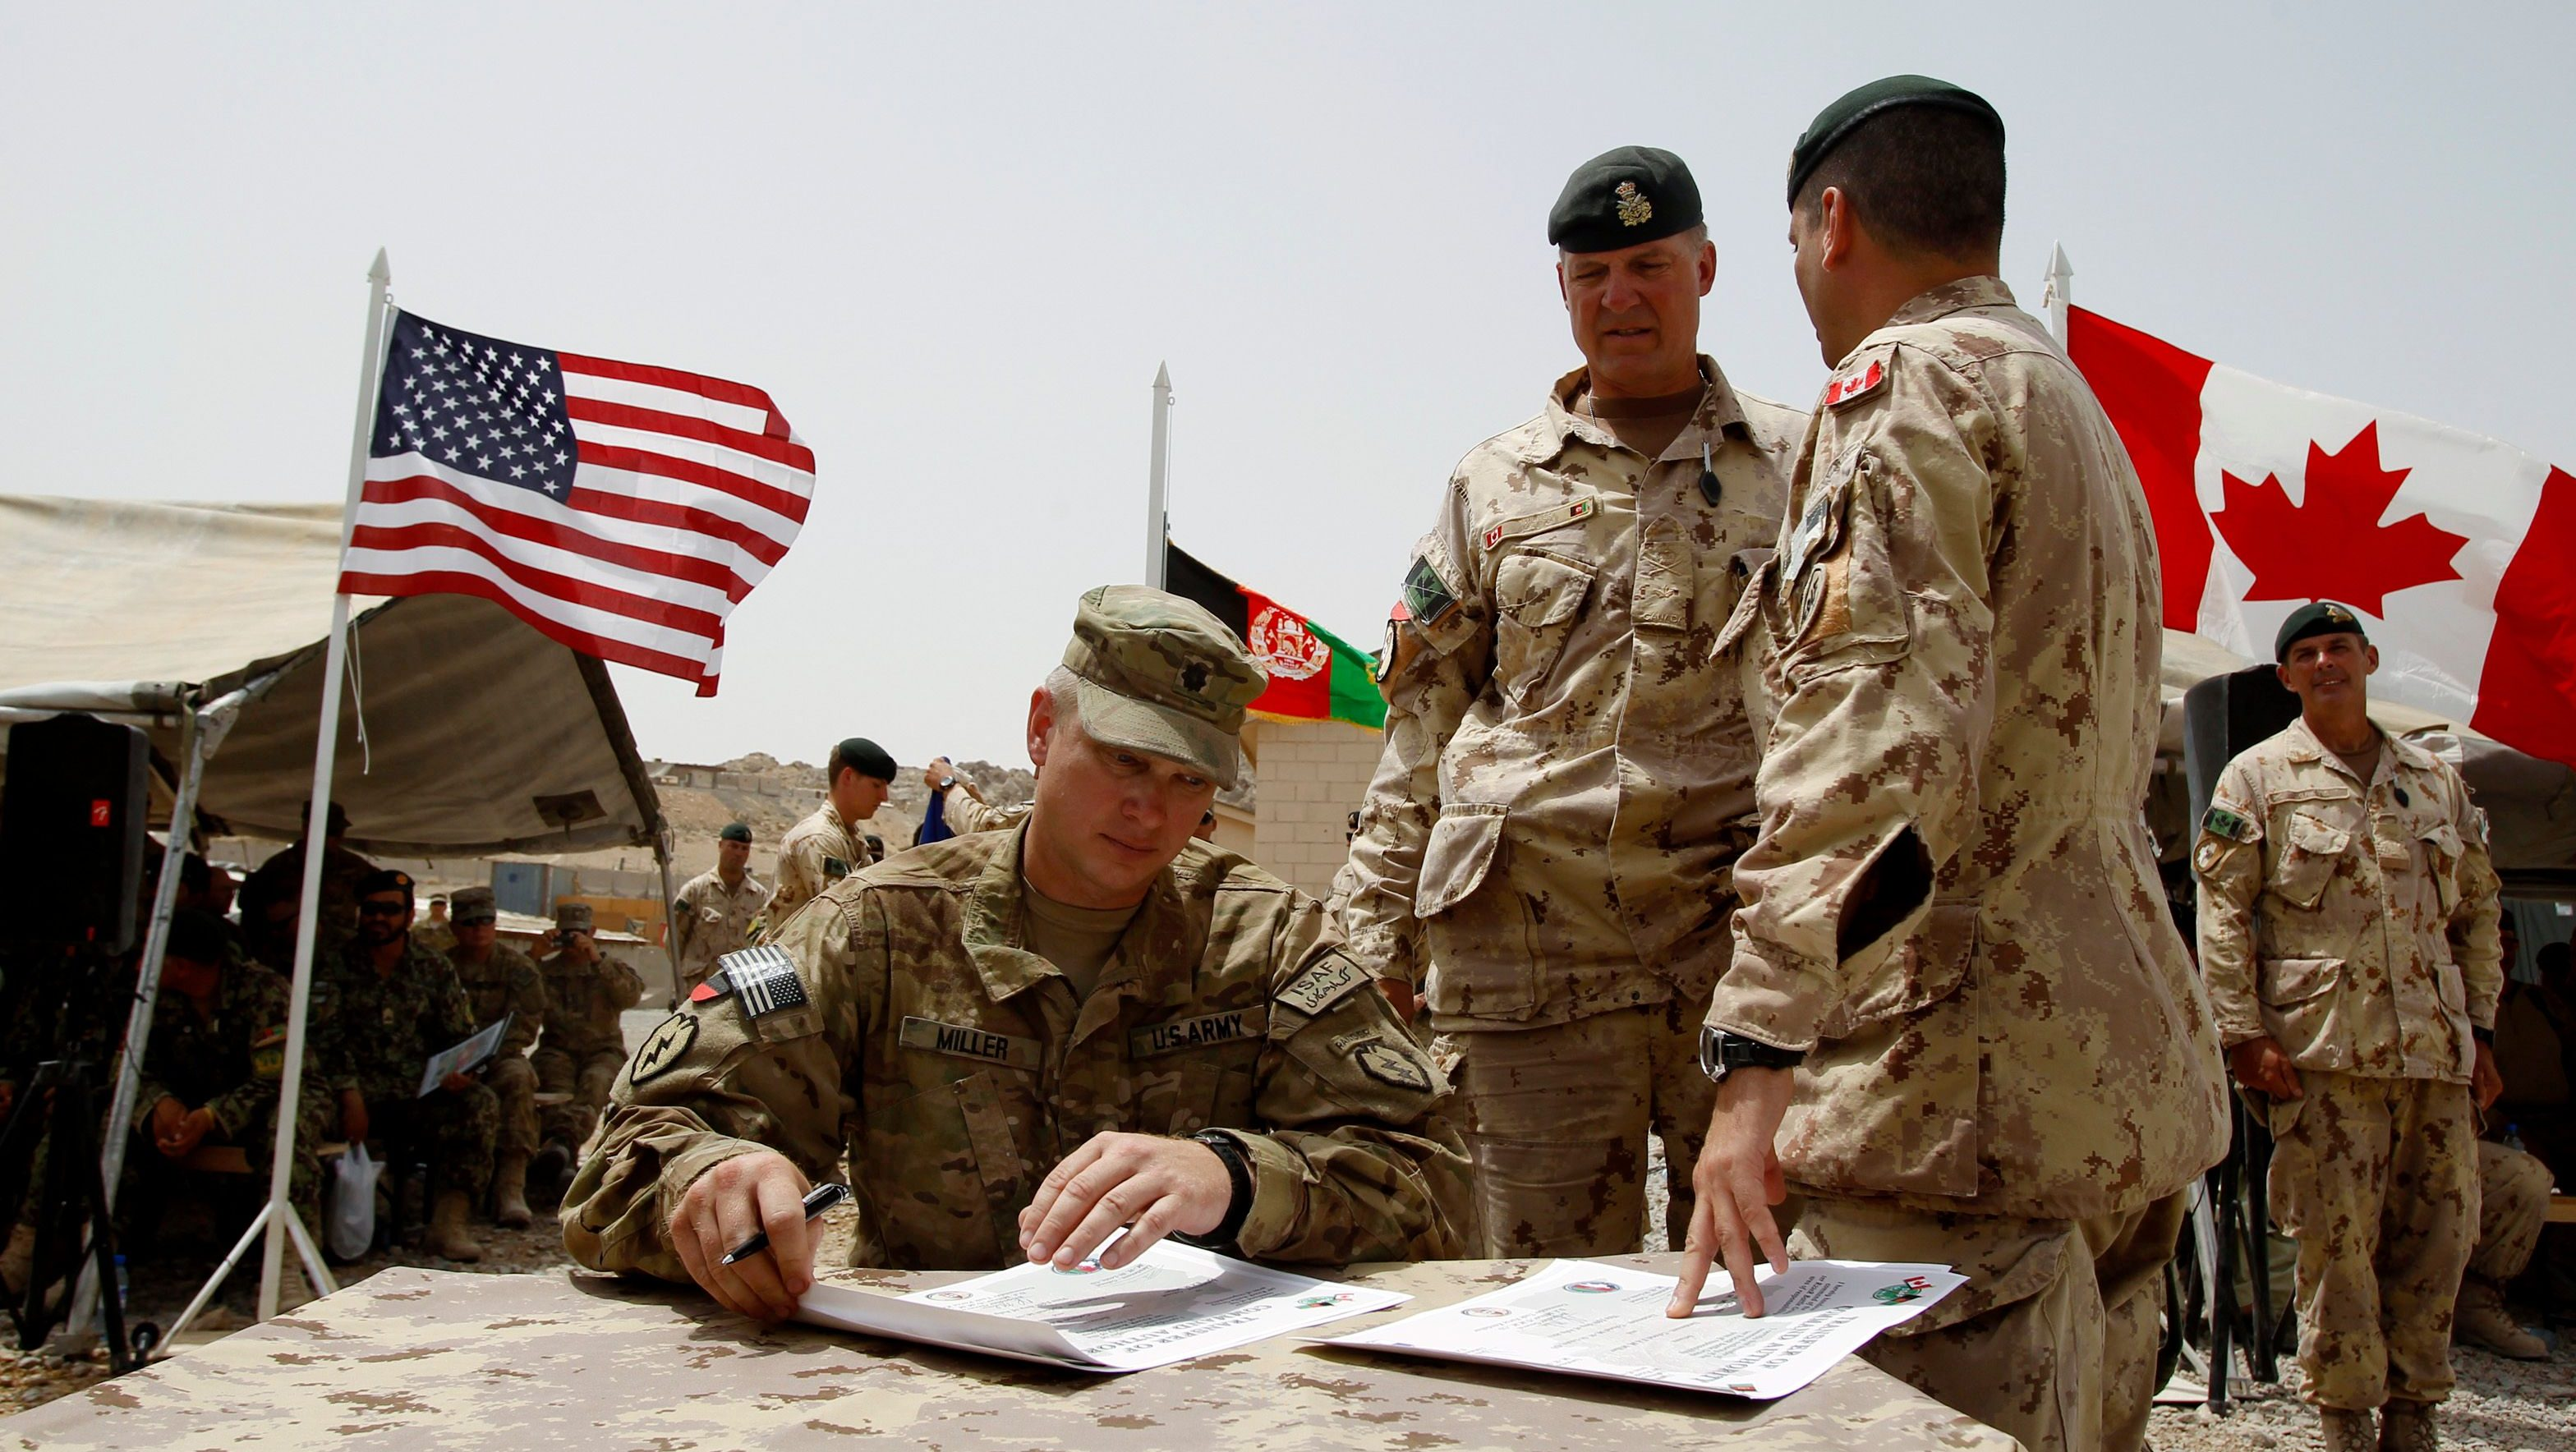 Canadian Brigadier-General Dean Milner (C) stands next to U.S. army Lieutenant Colonel Steve Miller as he signs a transfer of command document during a ceremony marking the handover of the Panjwai task force to American forces in forward fire base Masum Ghar Panjwai district in Kandahar province, southern Afghanistan, July 5, 2011. Canada is winding up combat operations in Afghanistan and all combat troops will leave by the end of July, after nearly ten years fighting in Afghanistan.  REUTERS/Baz Ratner (AFGHANISTAN  - Tags: MILITARY POLITICS CONFLICT) - GM1E7751CTW01